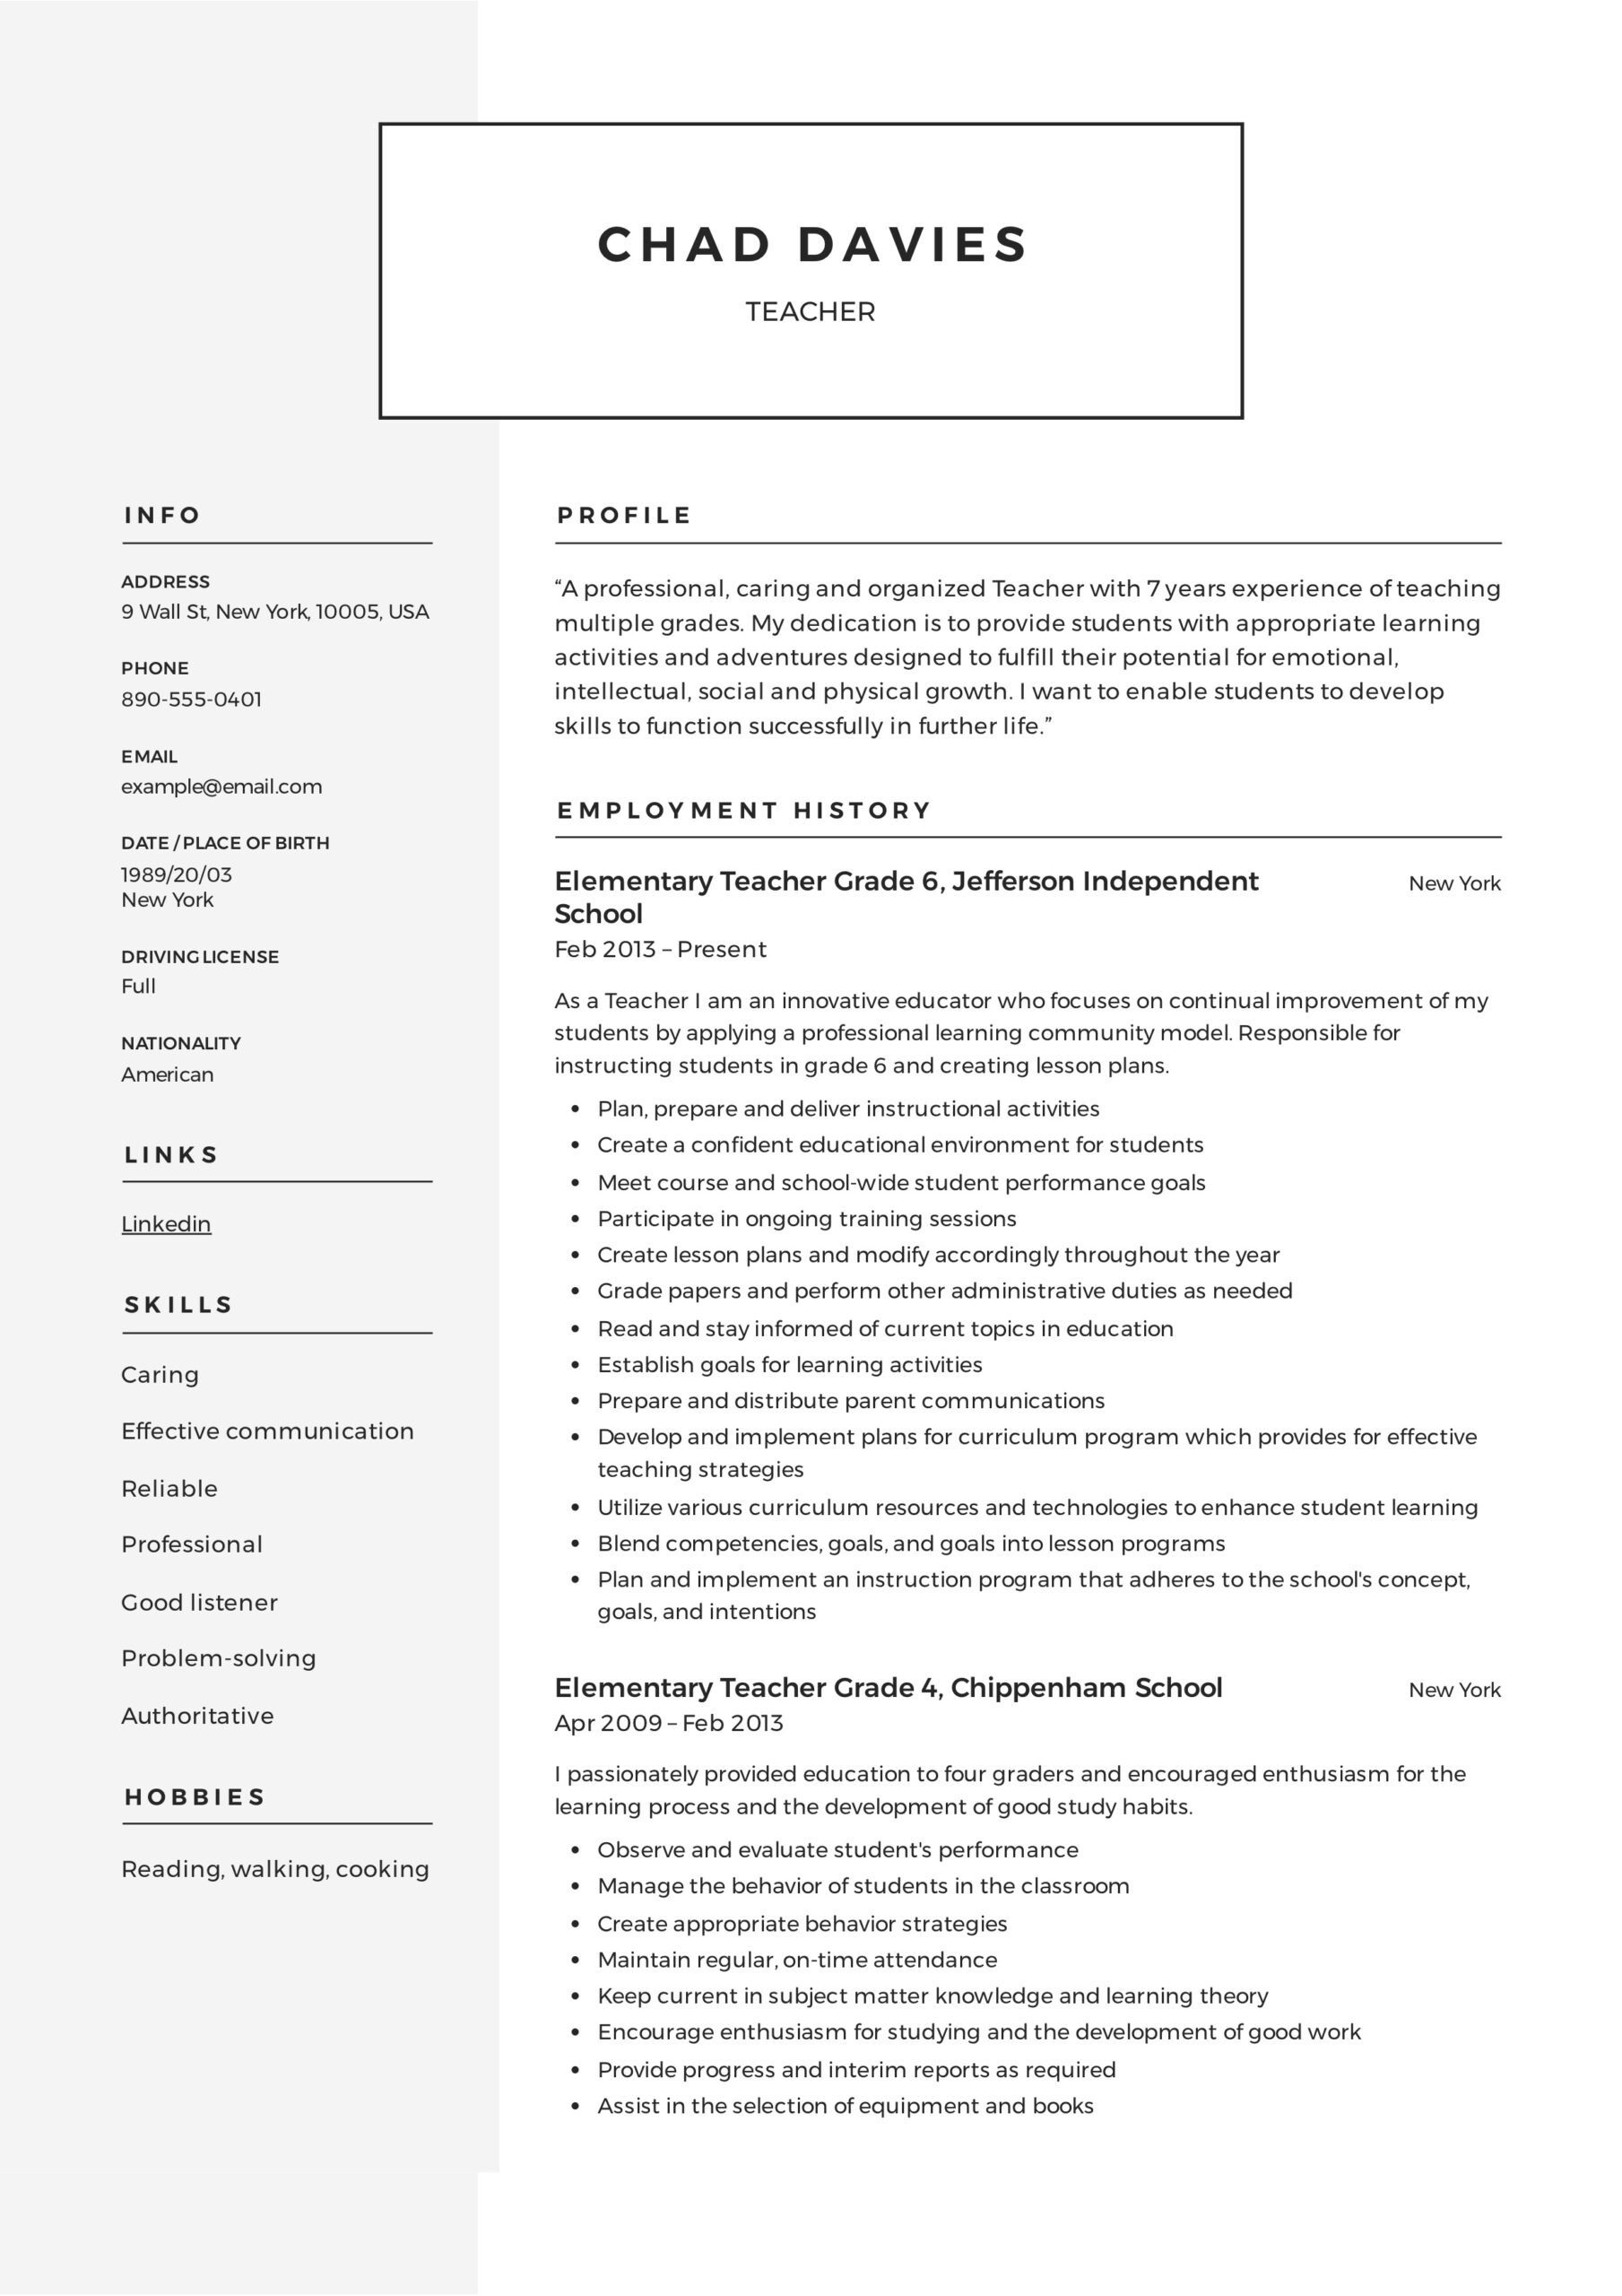 teacher resume writing guide examples pdf science format elementary sample aflac job Resume Science Teacher Resume Format